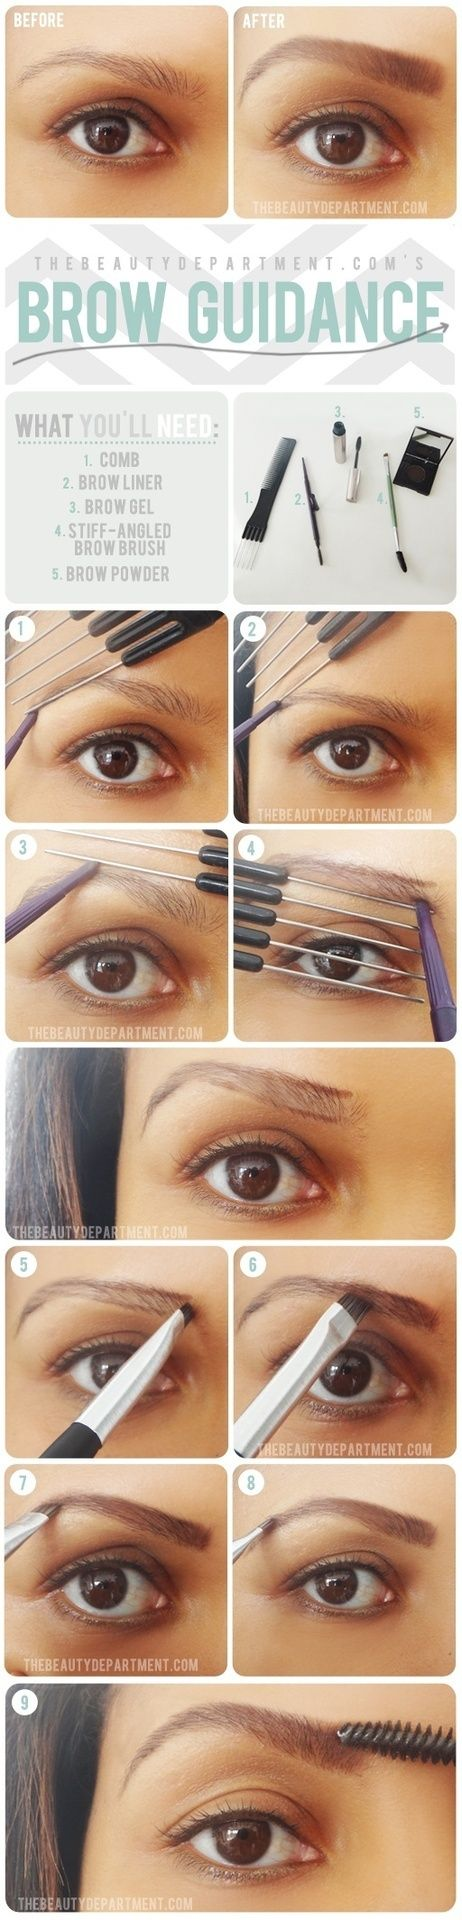 20 Most Useful and Helpful Makeup Tuturials for Fashionistas